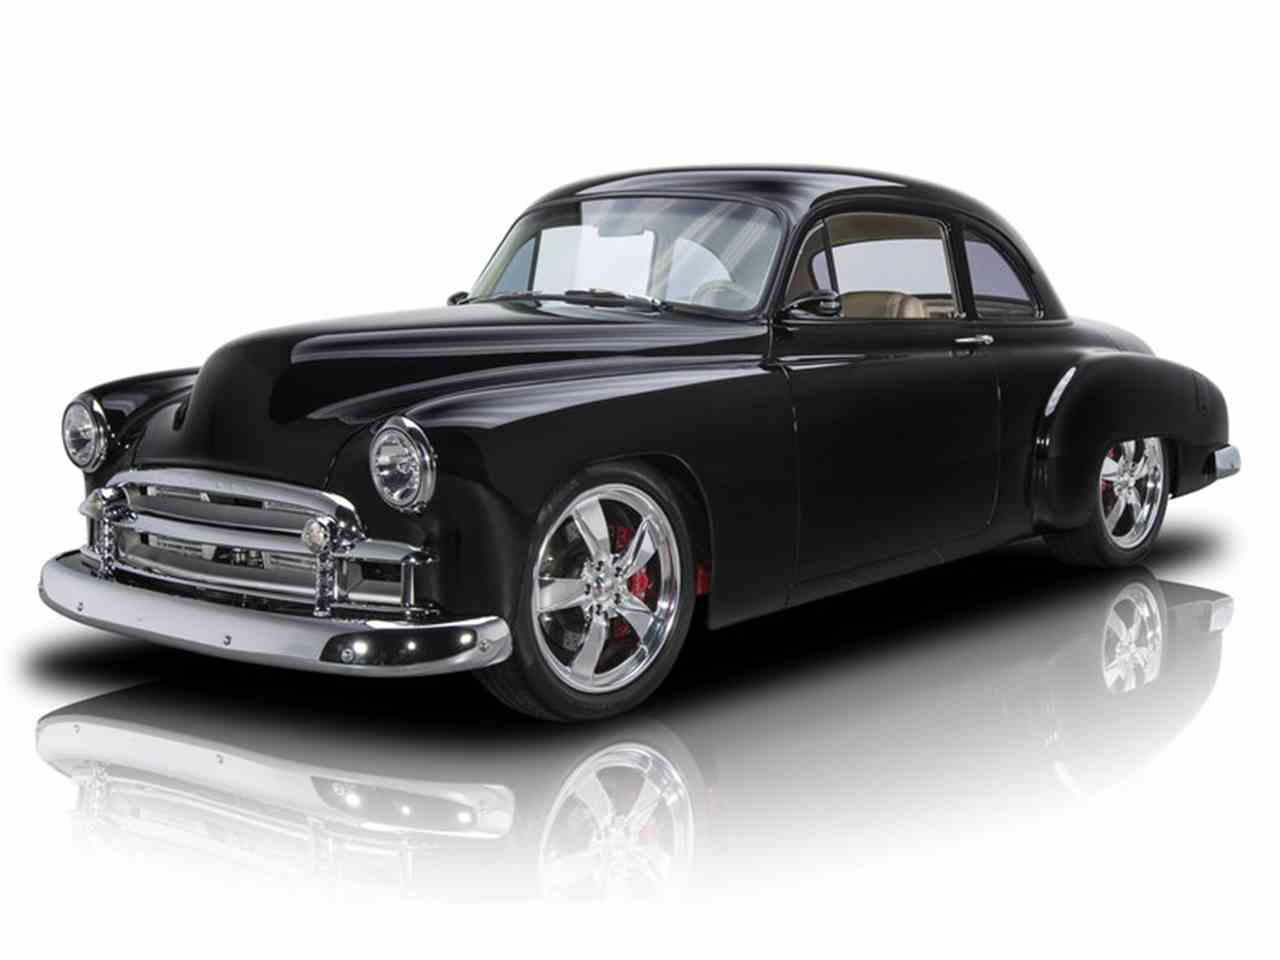 1950 Chevrolet Styleline for Sale   ClassicCars.com   CC-1042707